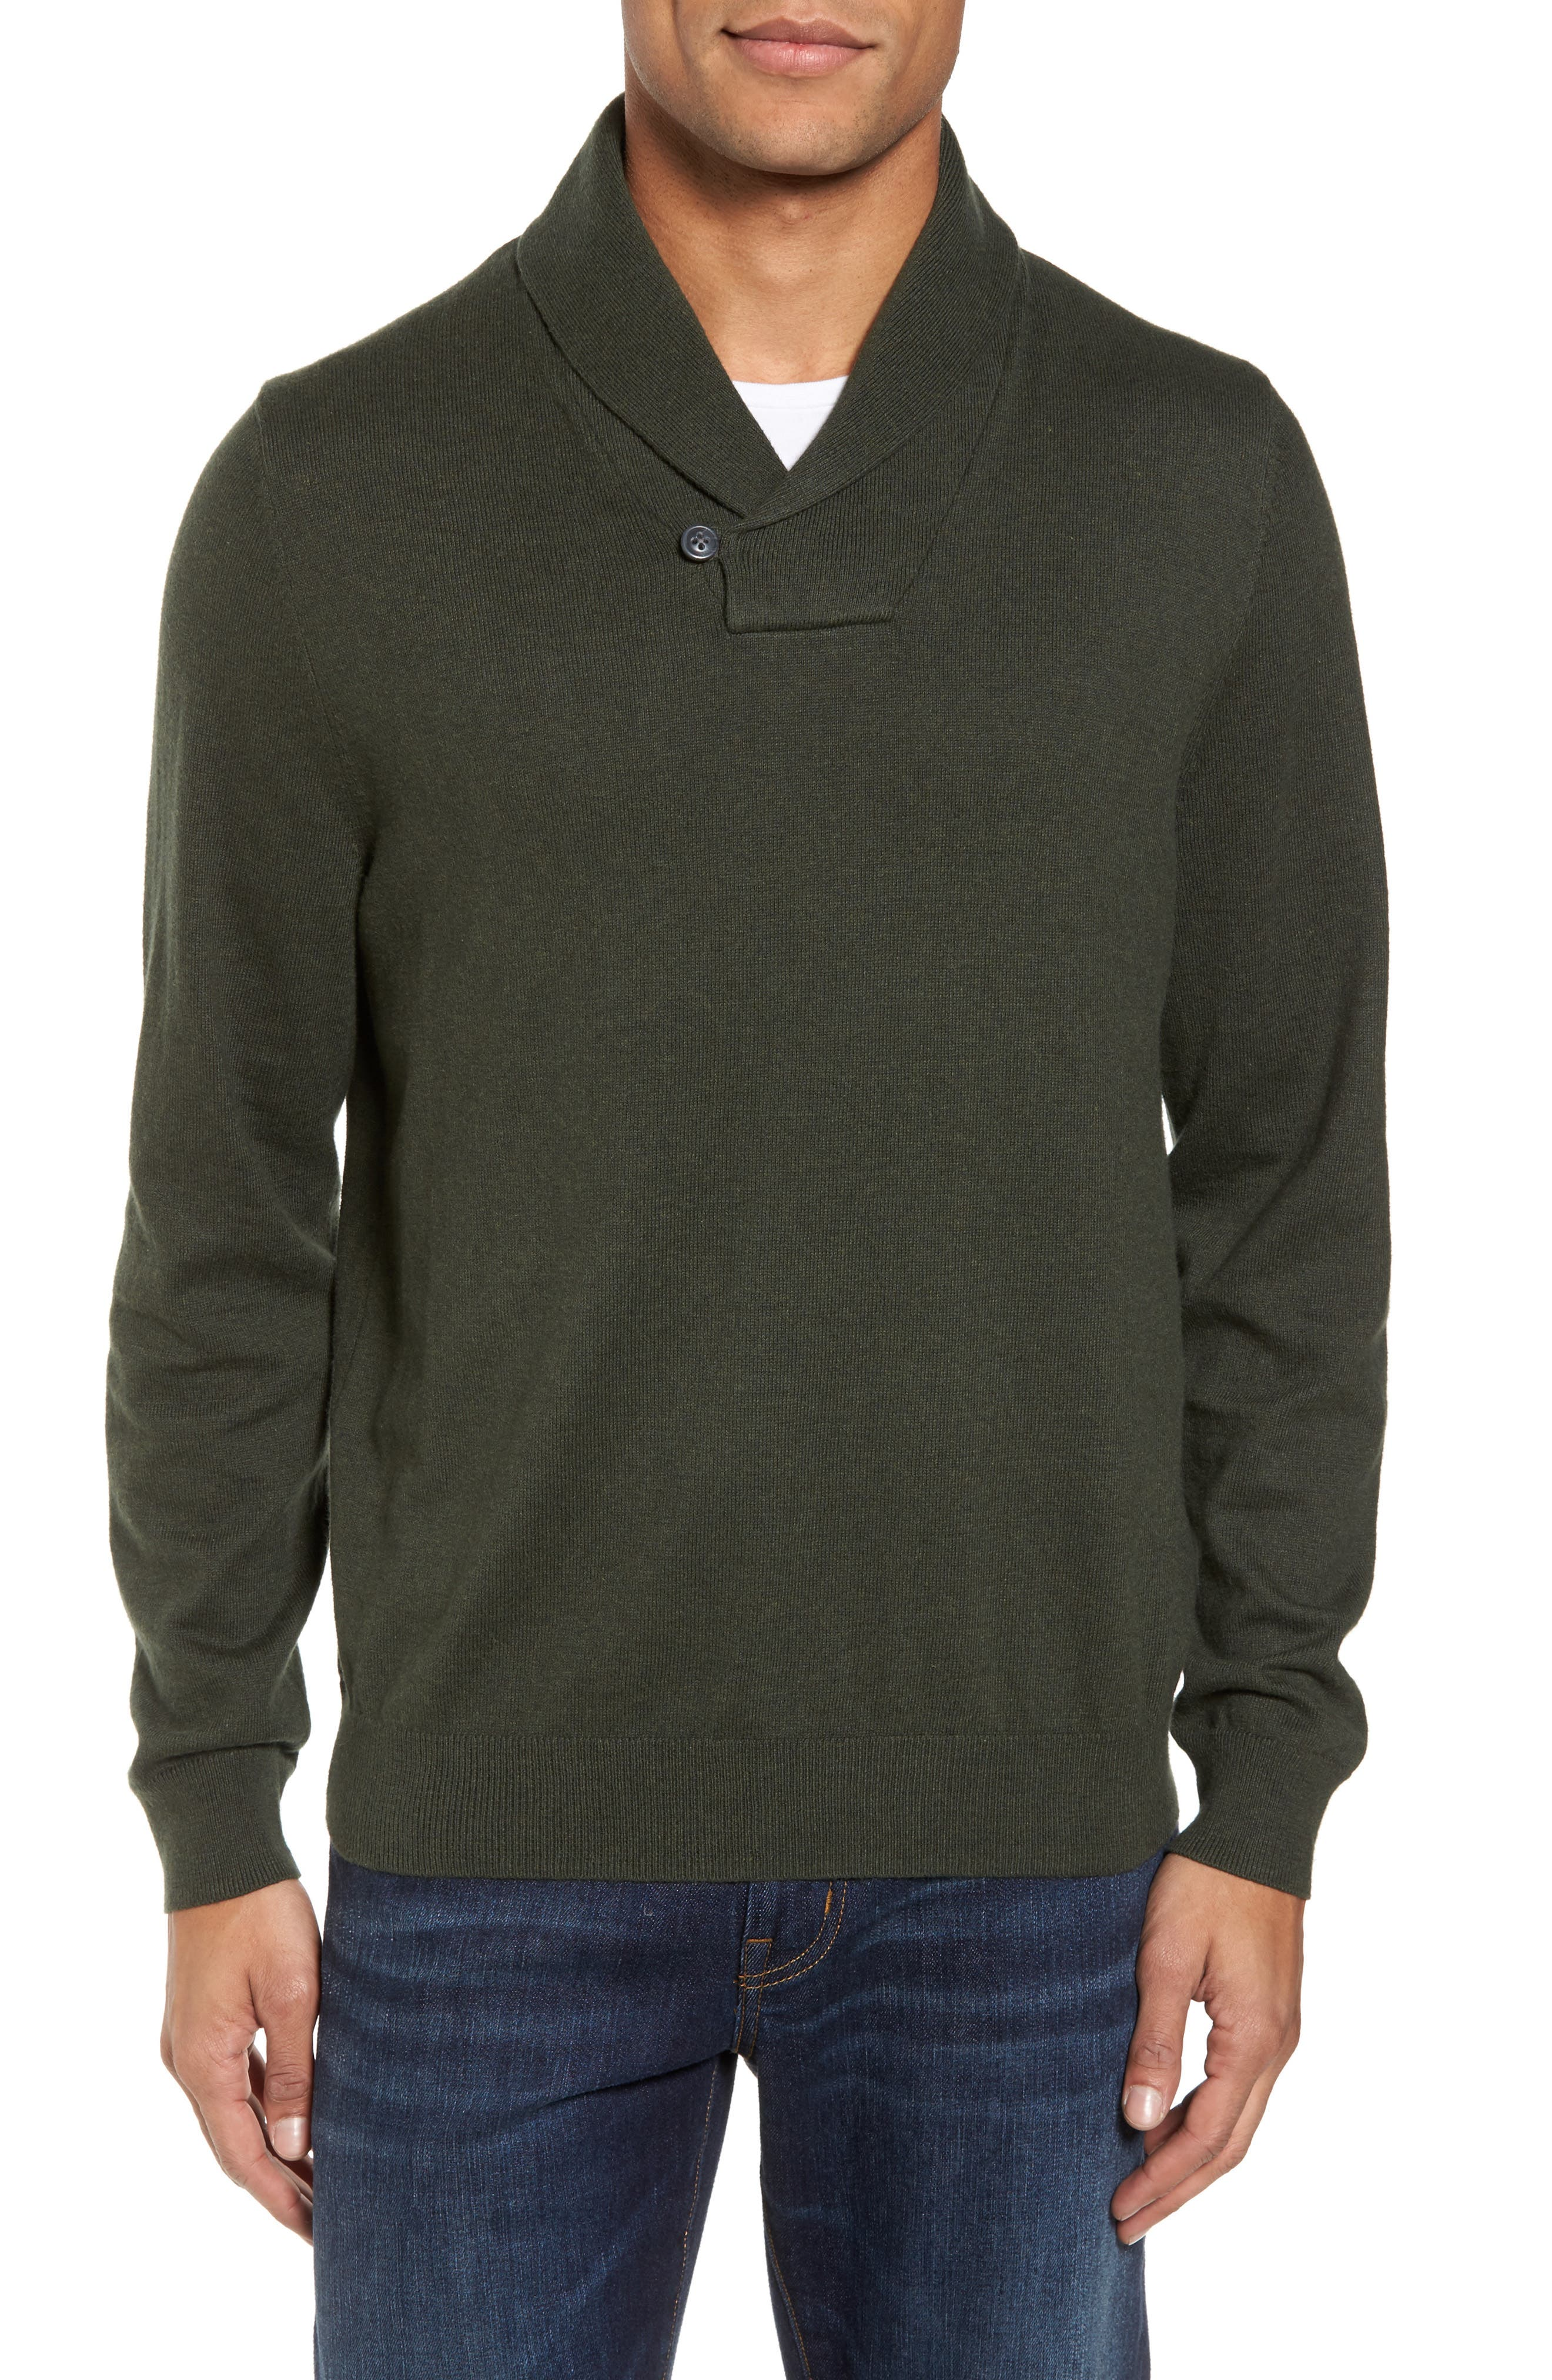 Cotton & Cashmere Shawl Collar Sweater,                             Main thumbnail 1, color,                             Green Deep Pine